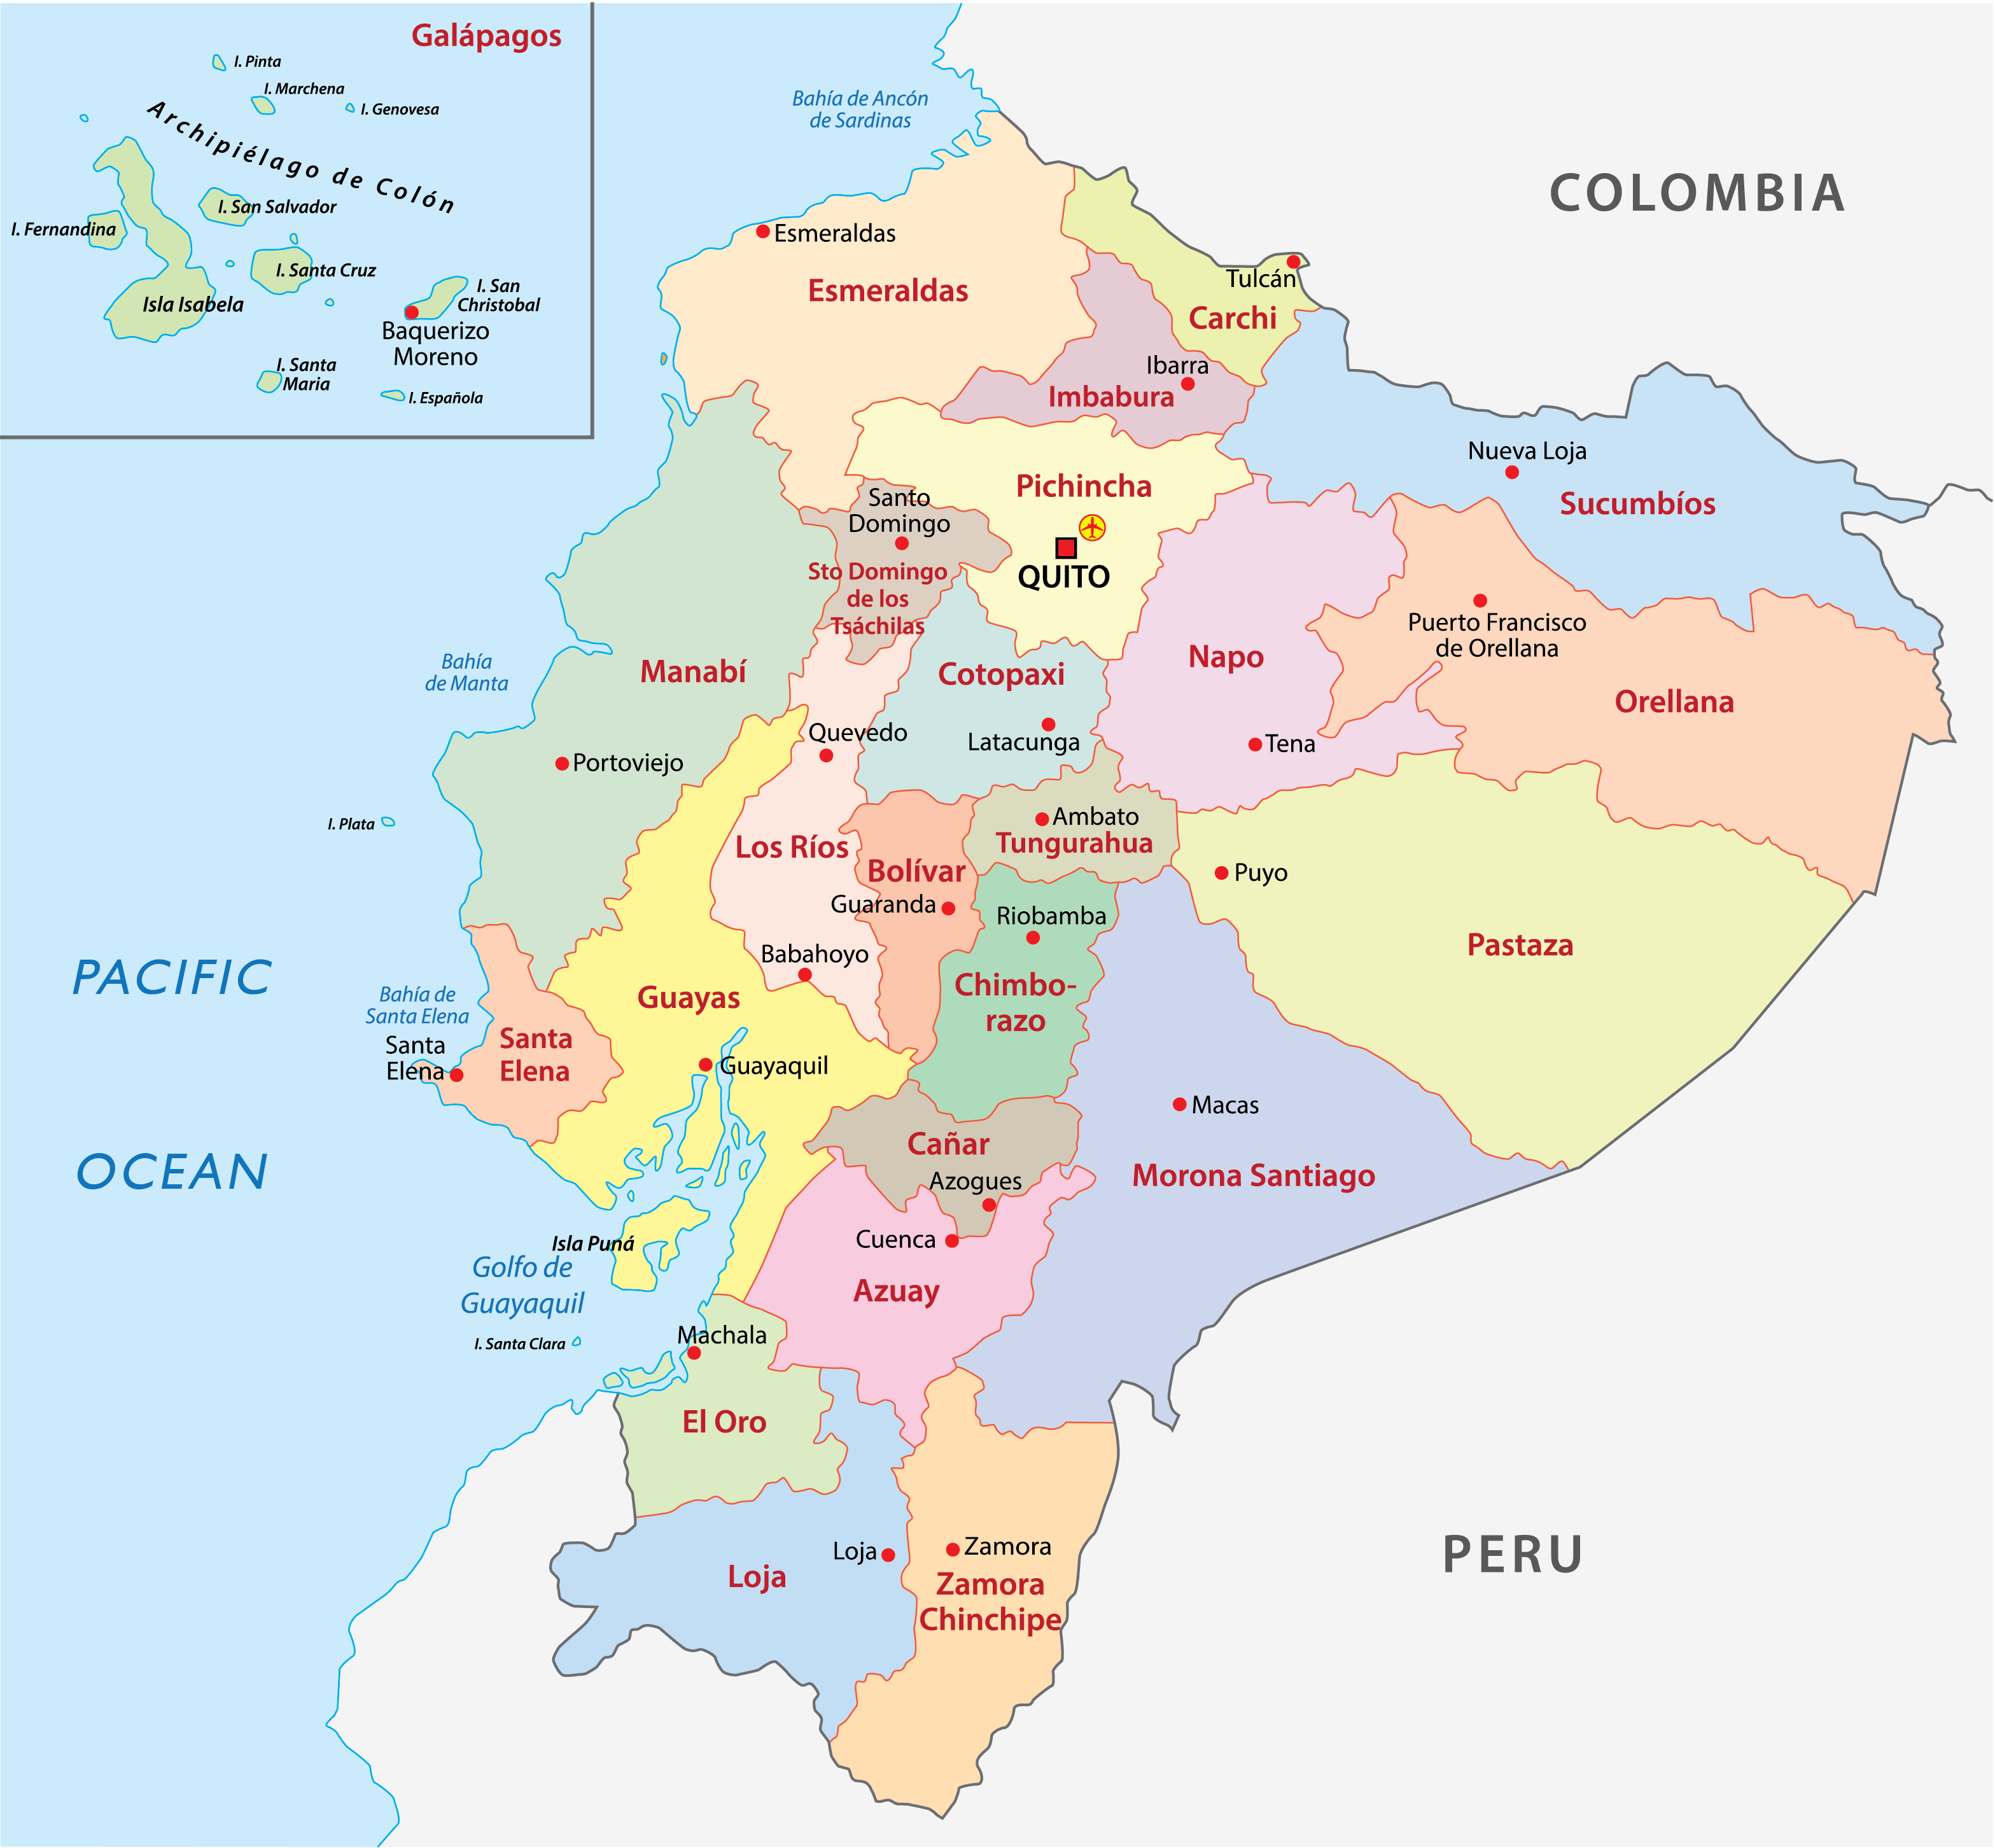 Political Map of Ecuador showing its 24 provinces and the capital city of Quito